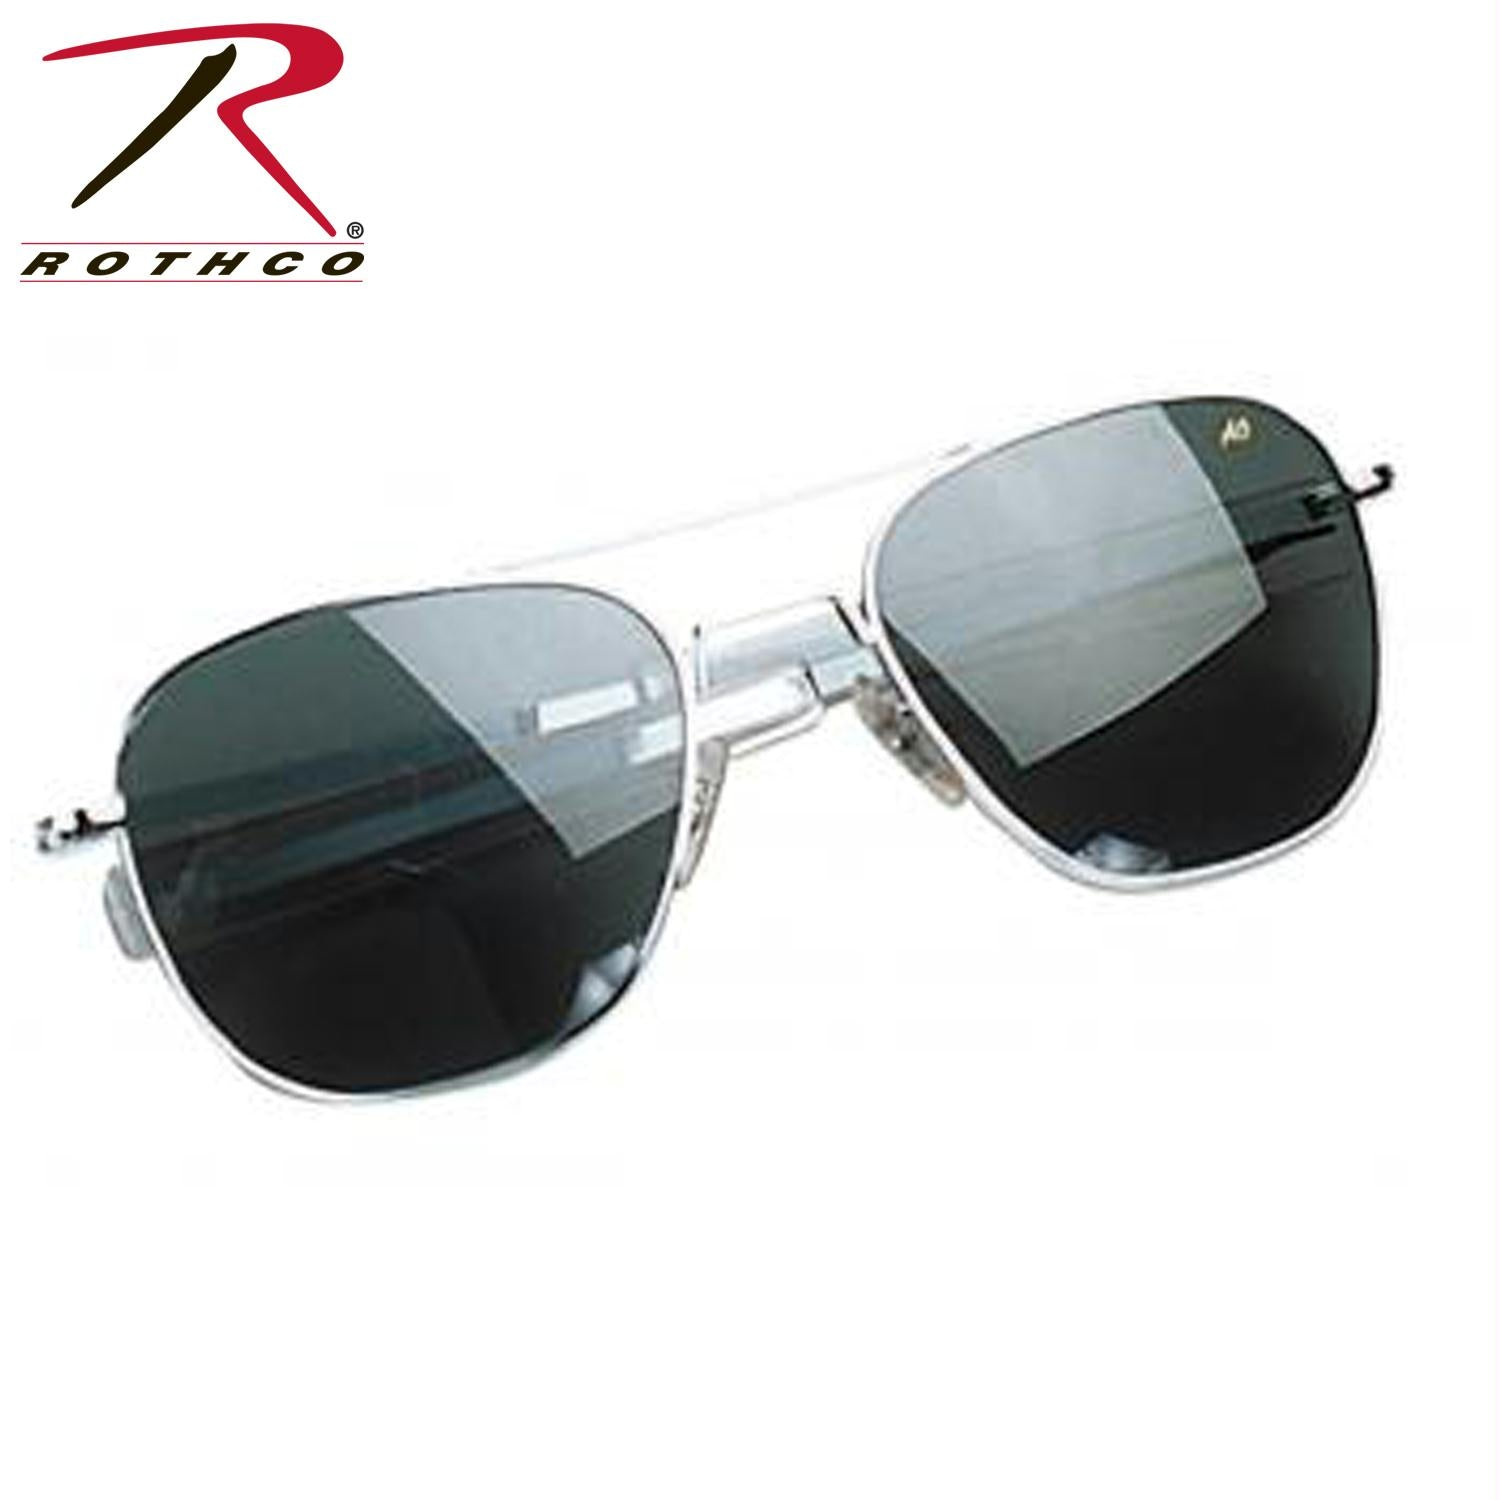 American Optical 52 MM Polarized Pilots Sunglasses - Chrome